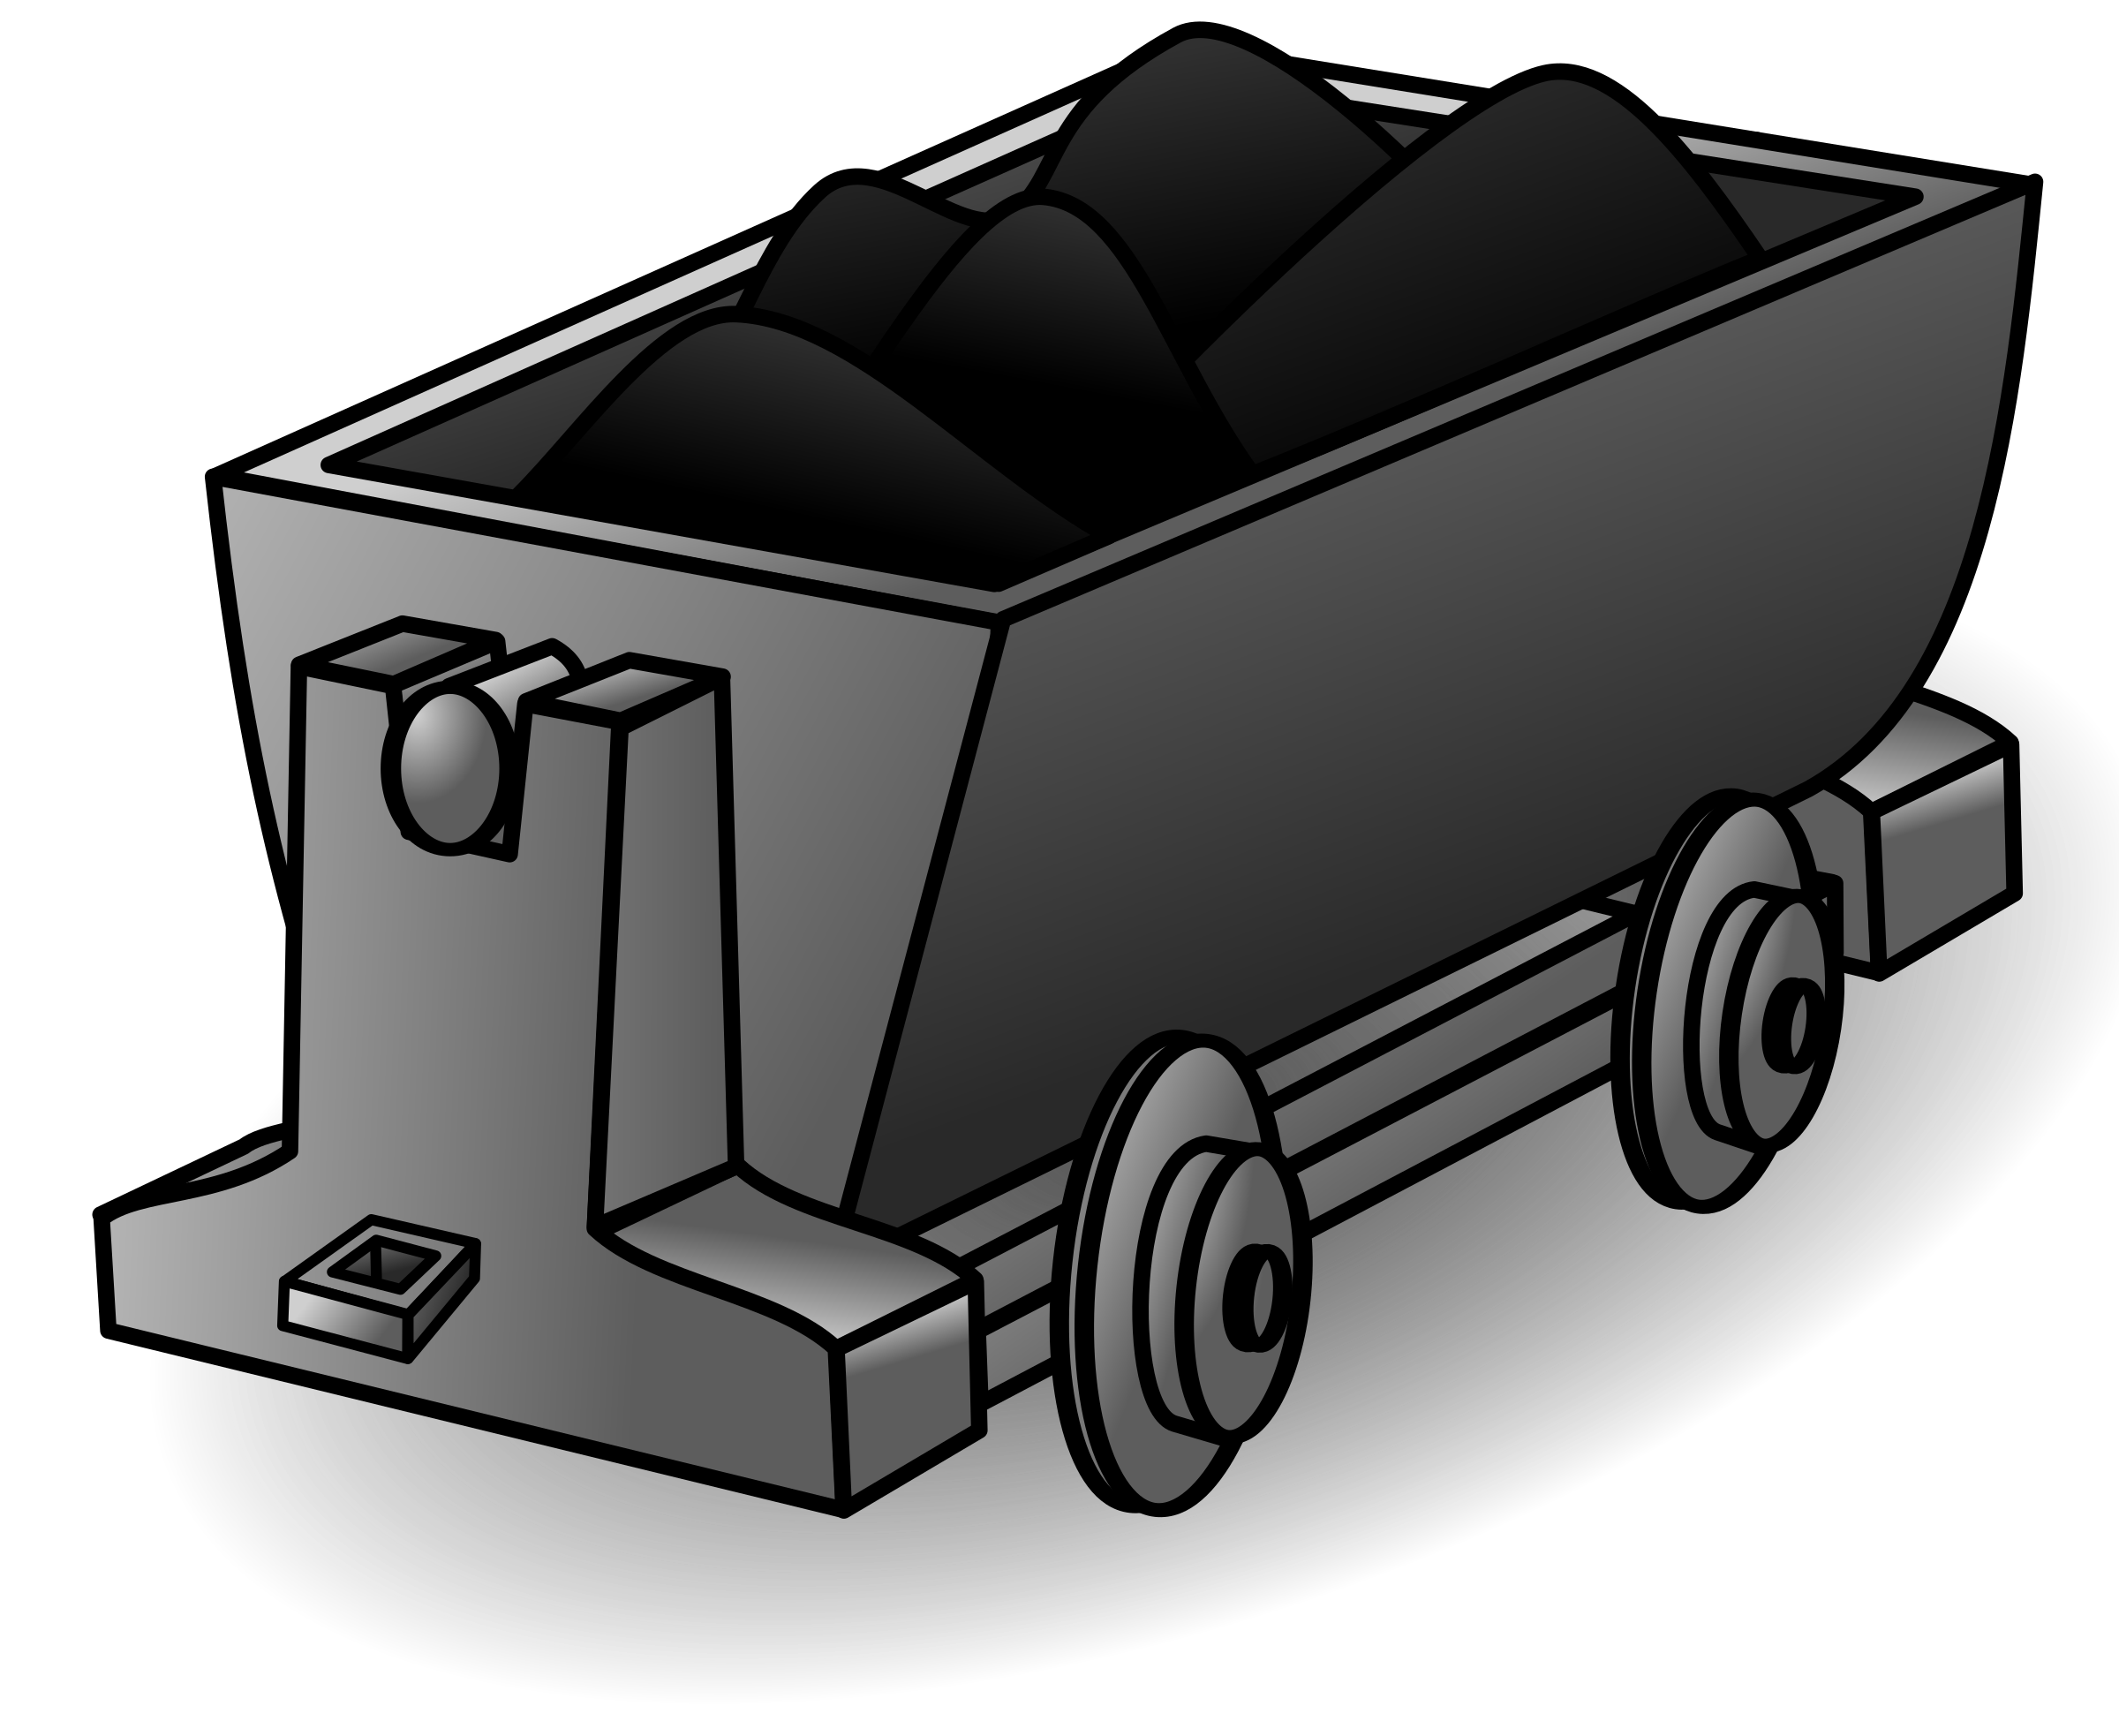 Coal clipart. Lorry big image png